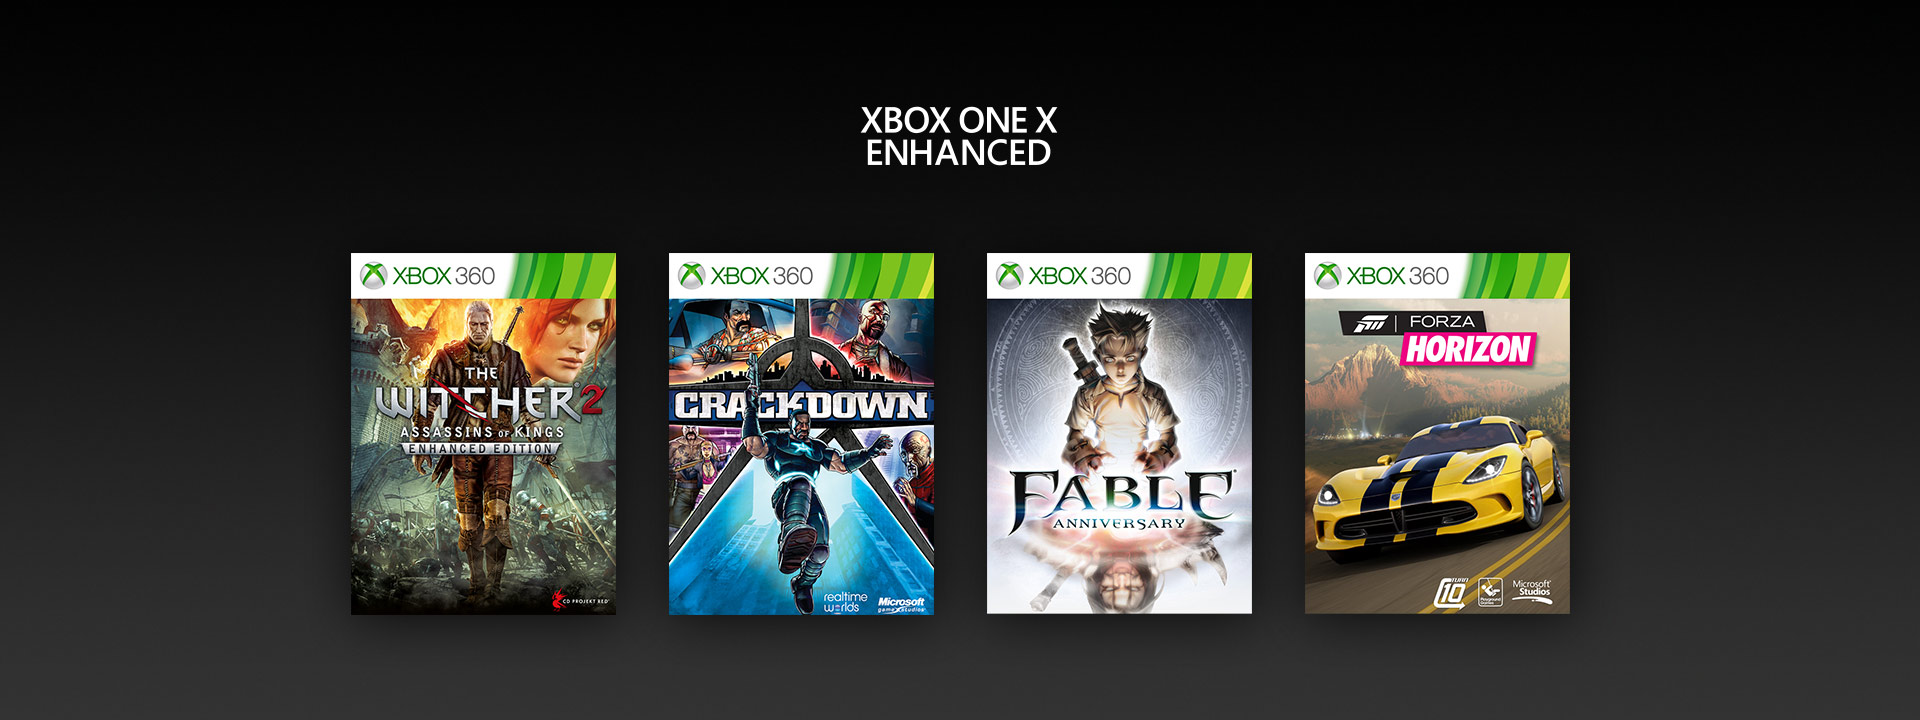 Xbox One X Enhanced-Logo – Witcher 2 Crackdown Fable Anniversary Forza Horizon – Verpackung